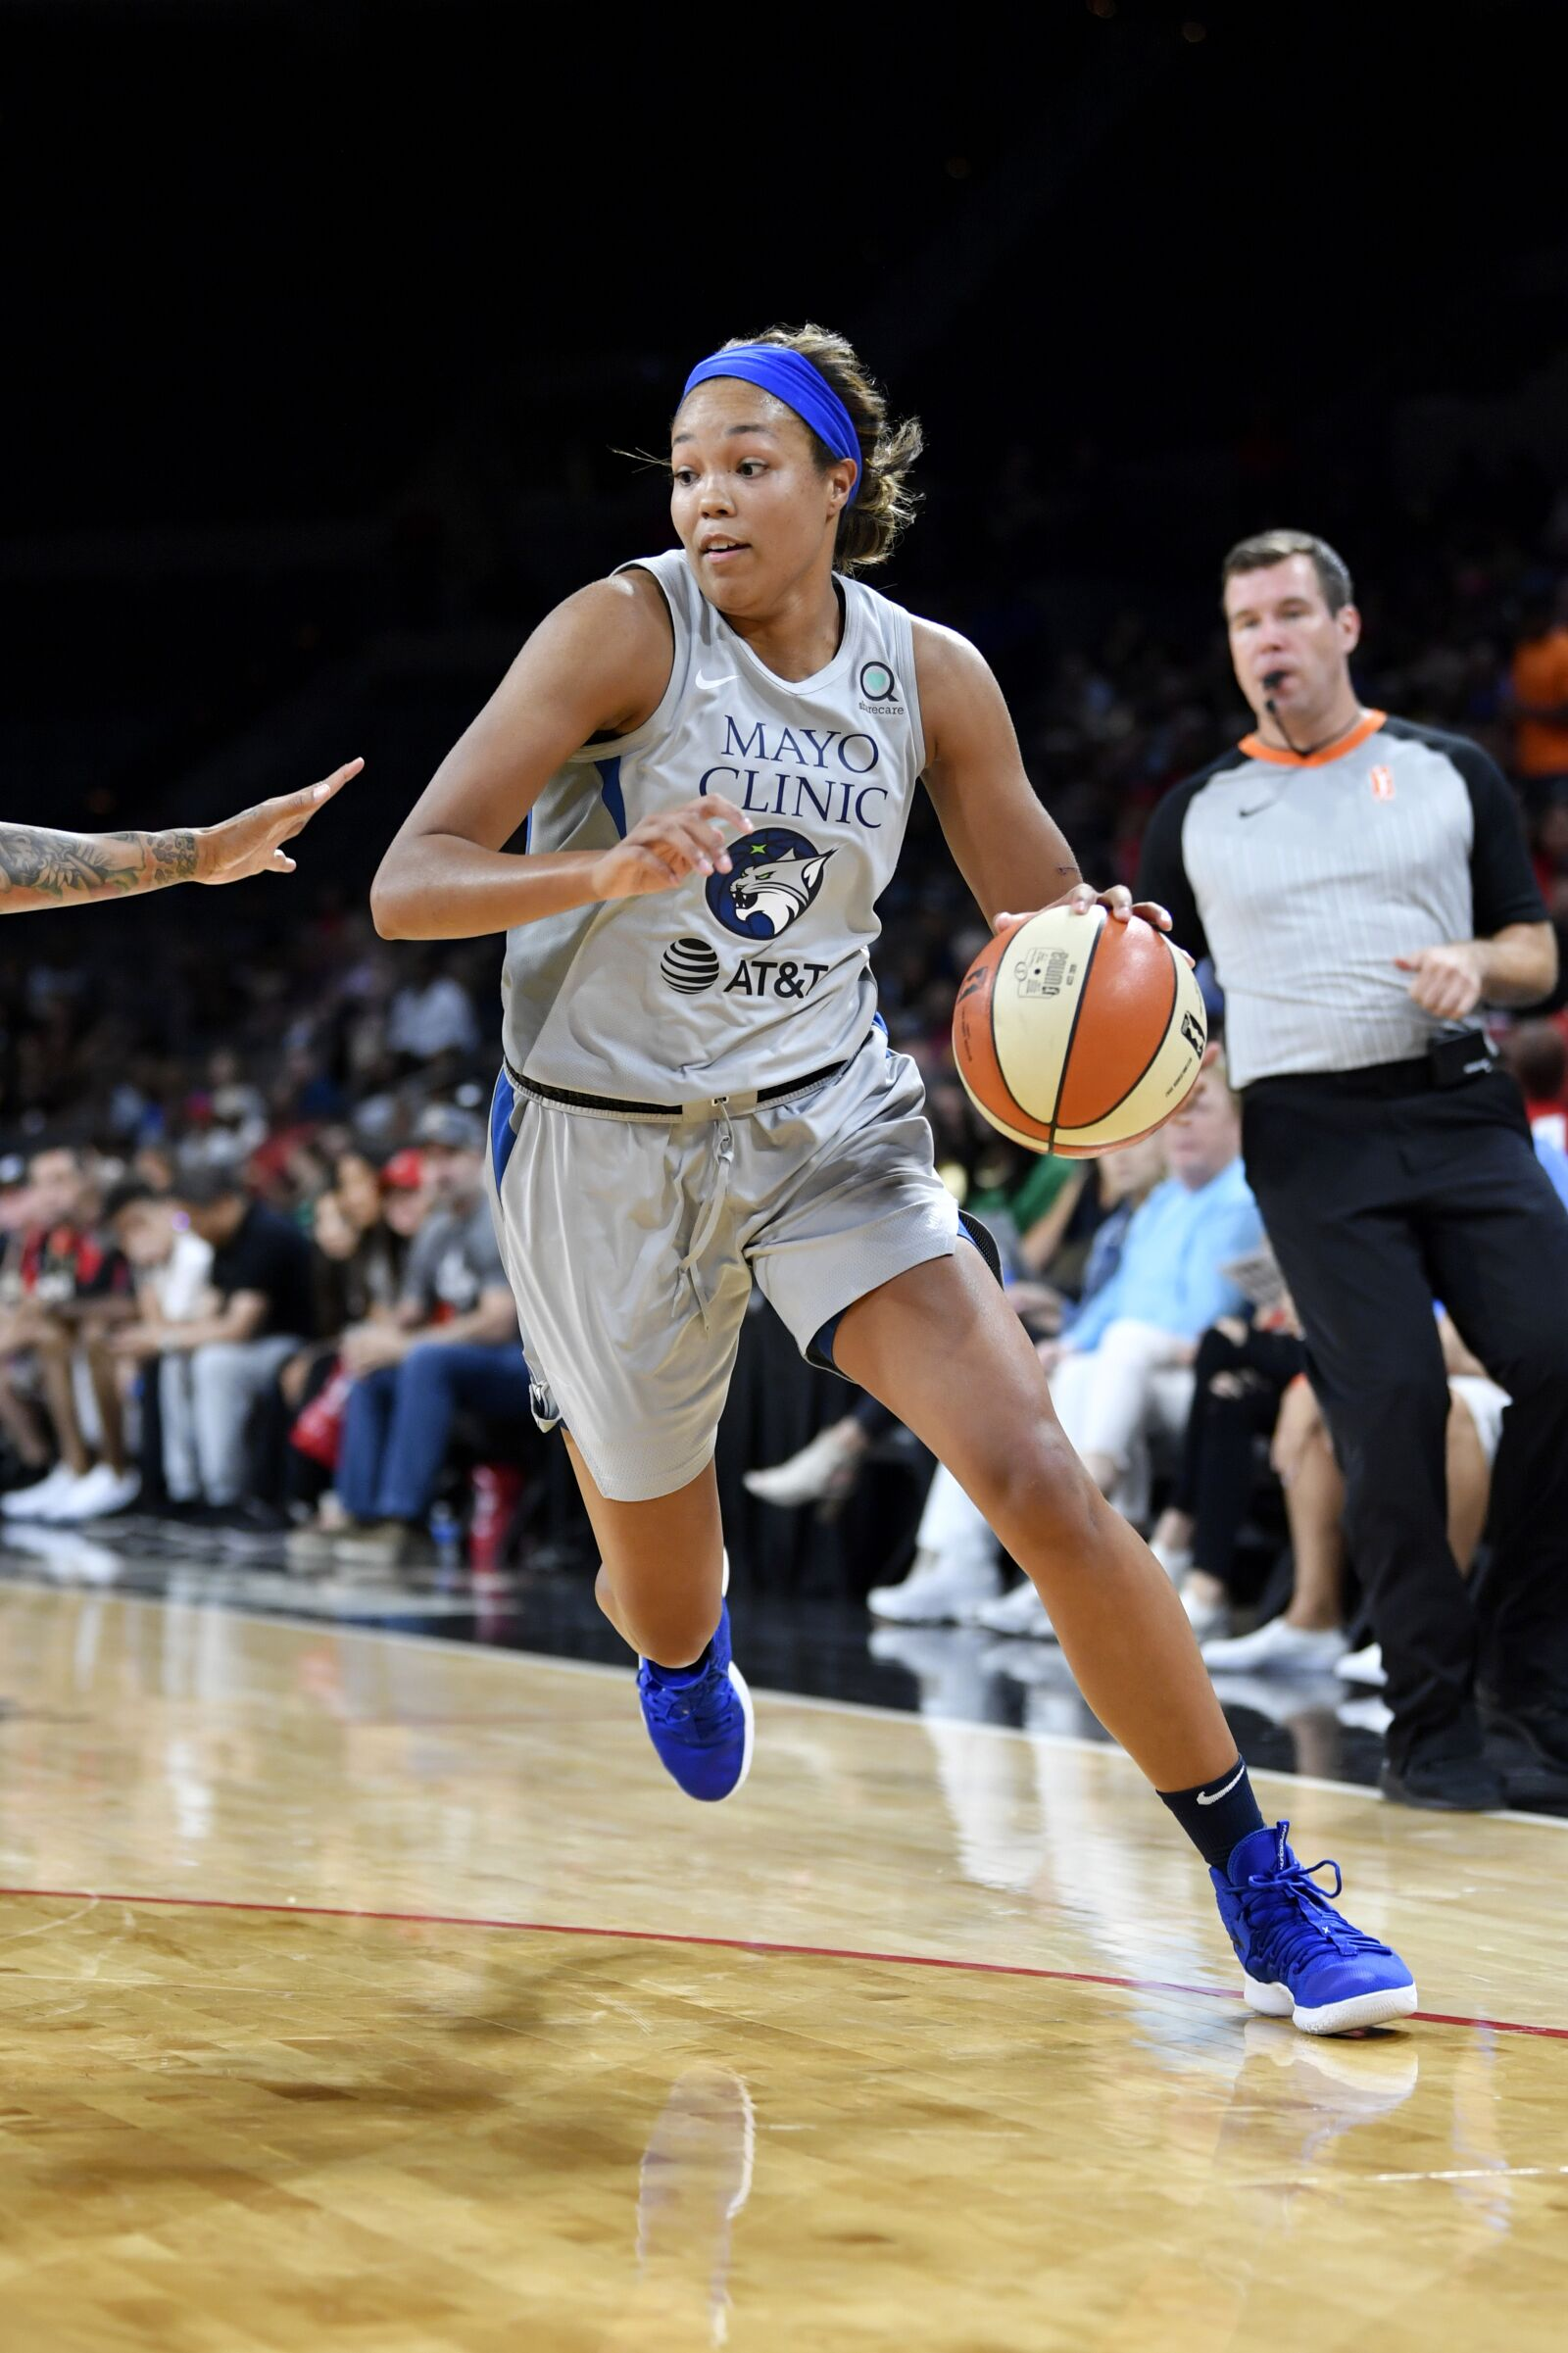 Napheesa Collier replaces A'Ja Wilson in the all-star game